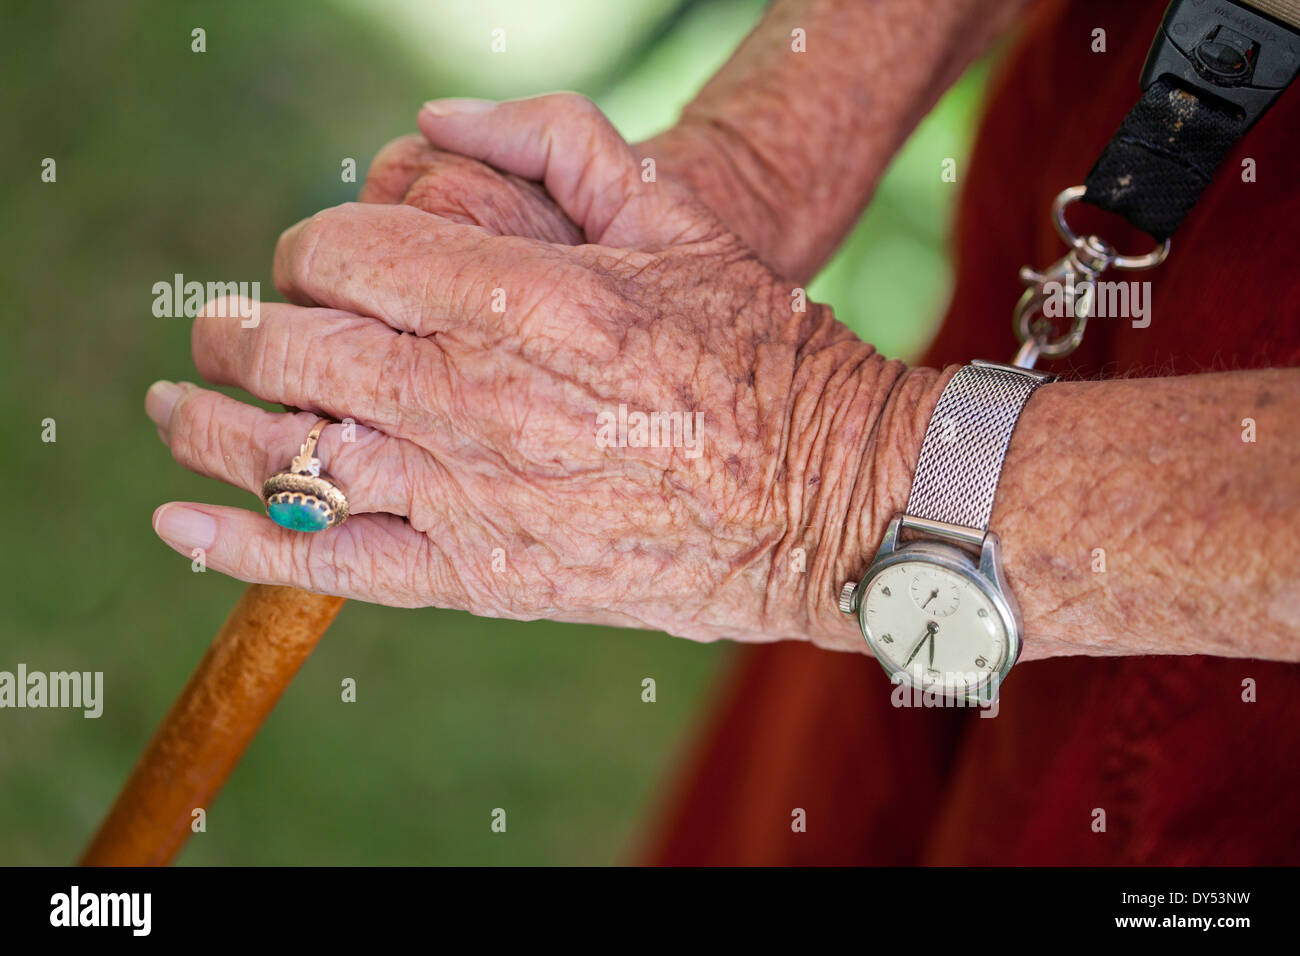 Close up of woman's hands holding walking stick Photo Stock